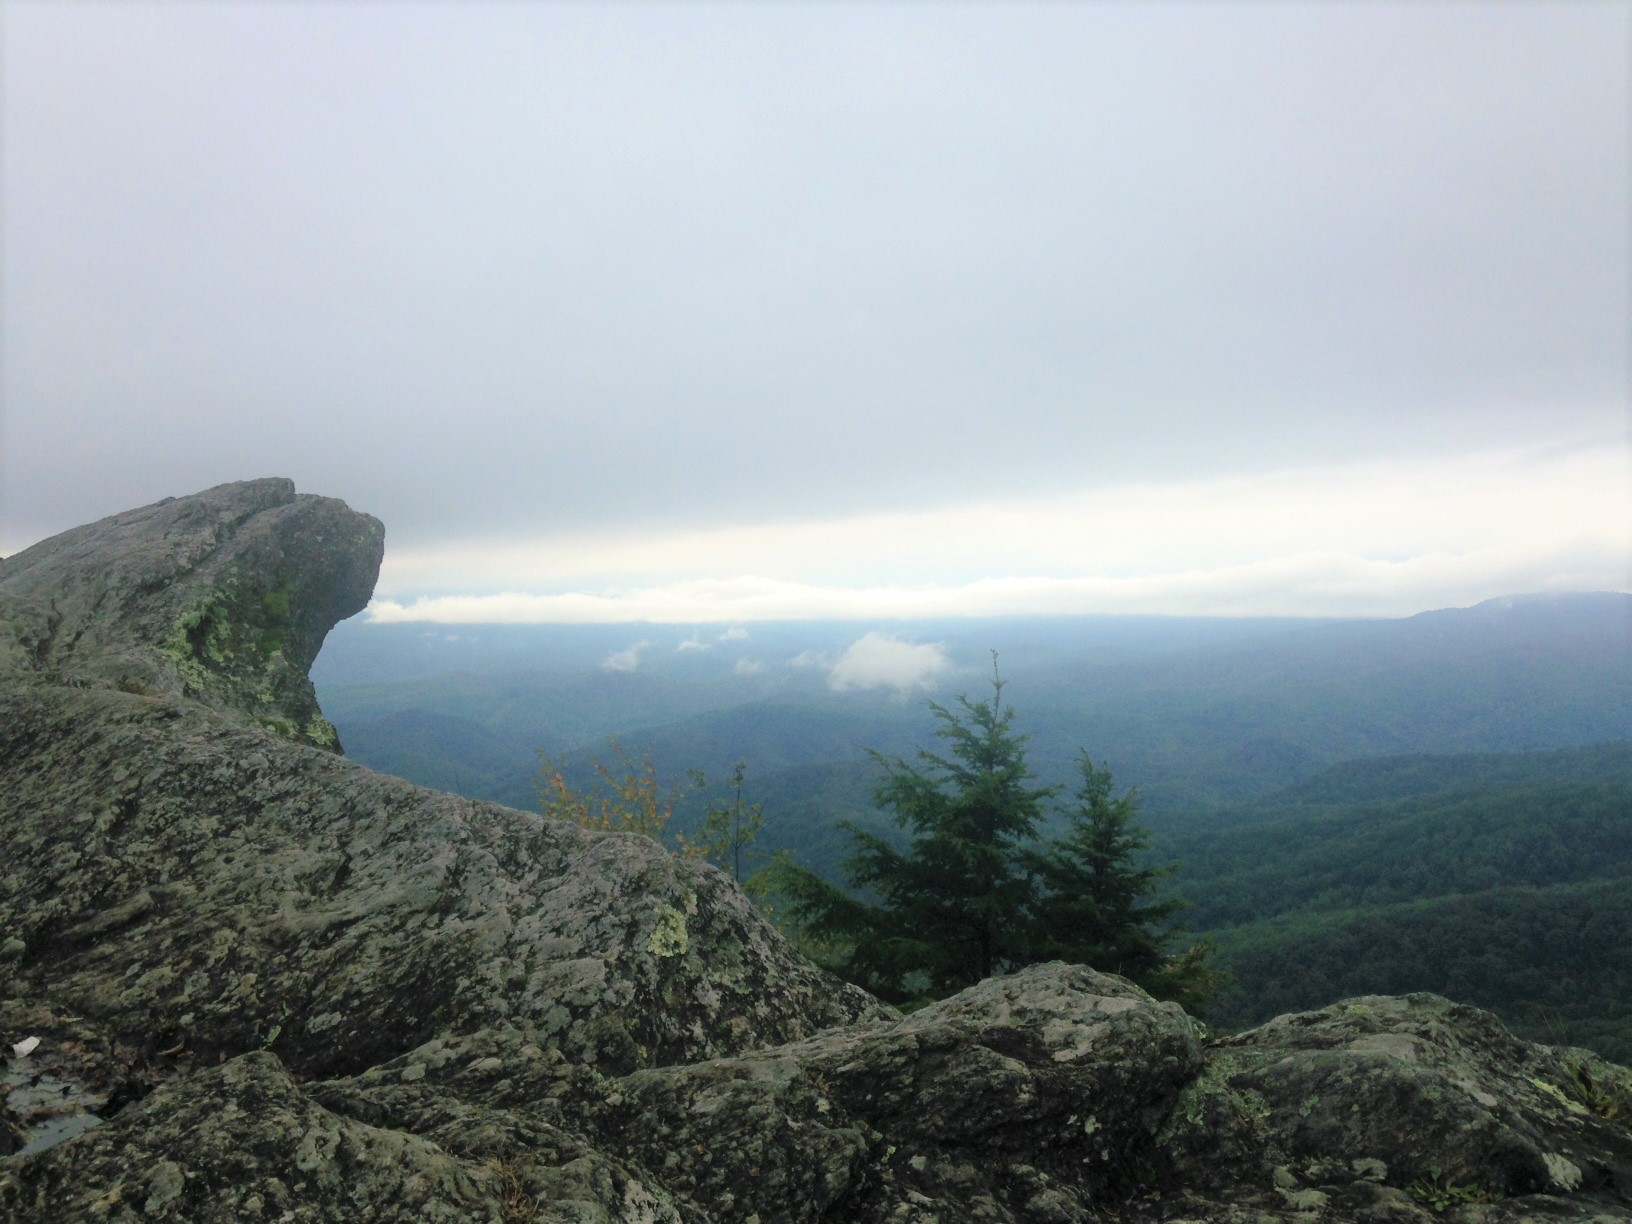 misty mountains behind rocks at blowing rock